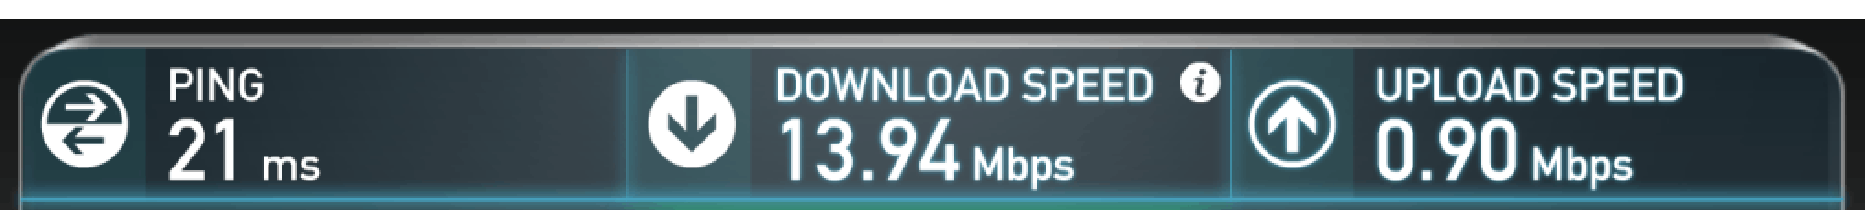 Express VPN Review Speed Test